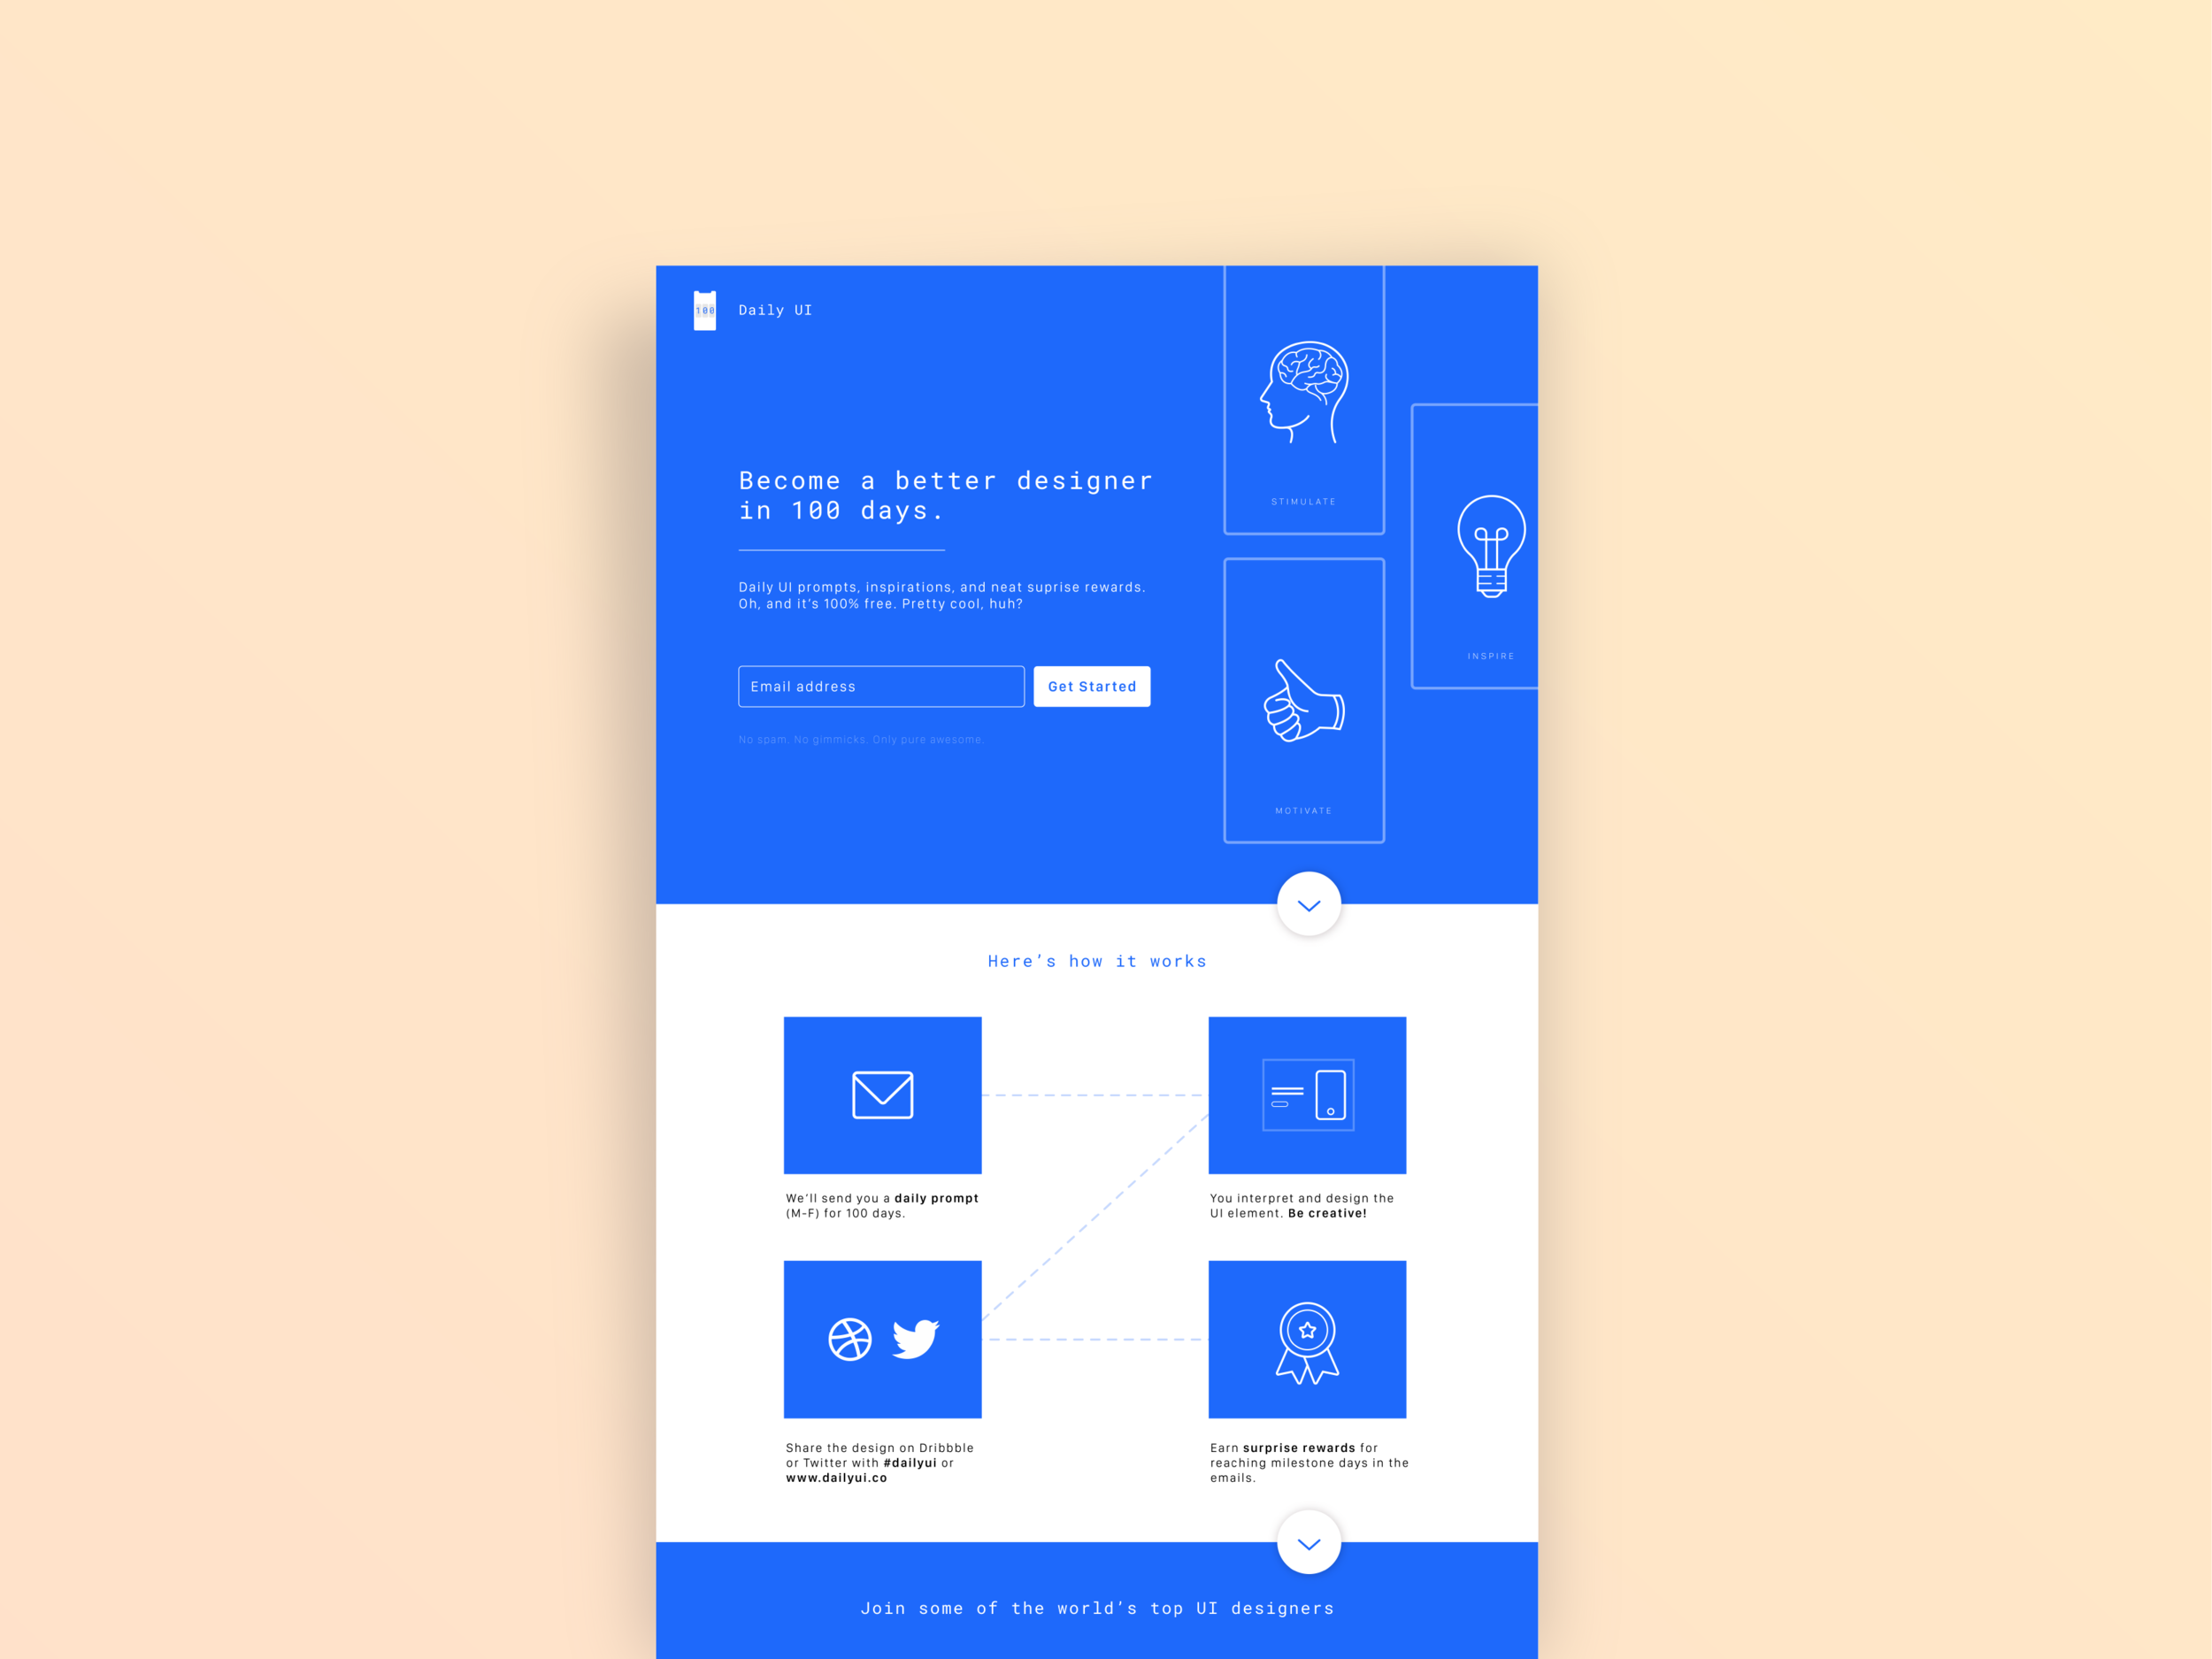 Daily UI - 100 Day Challenge